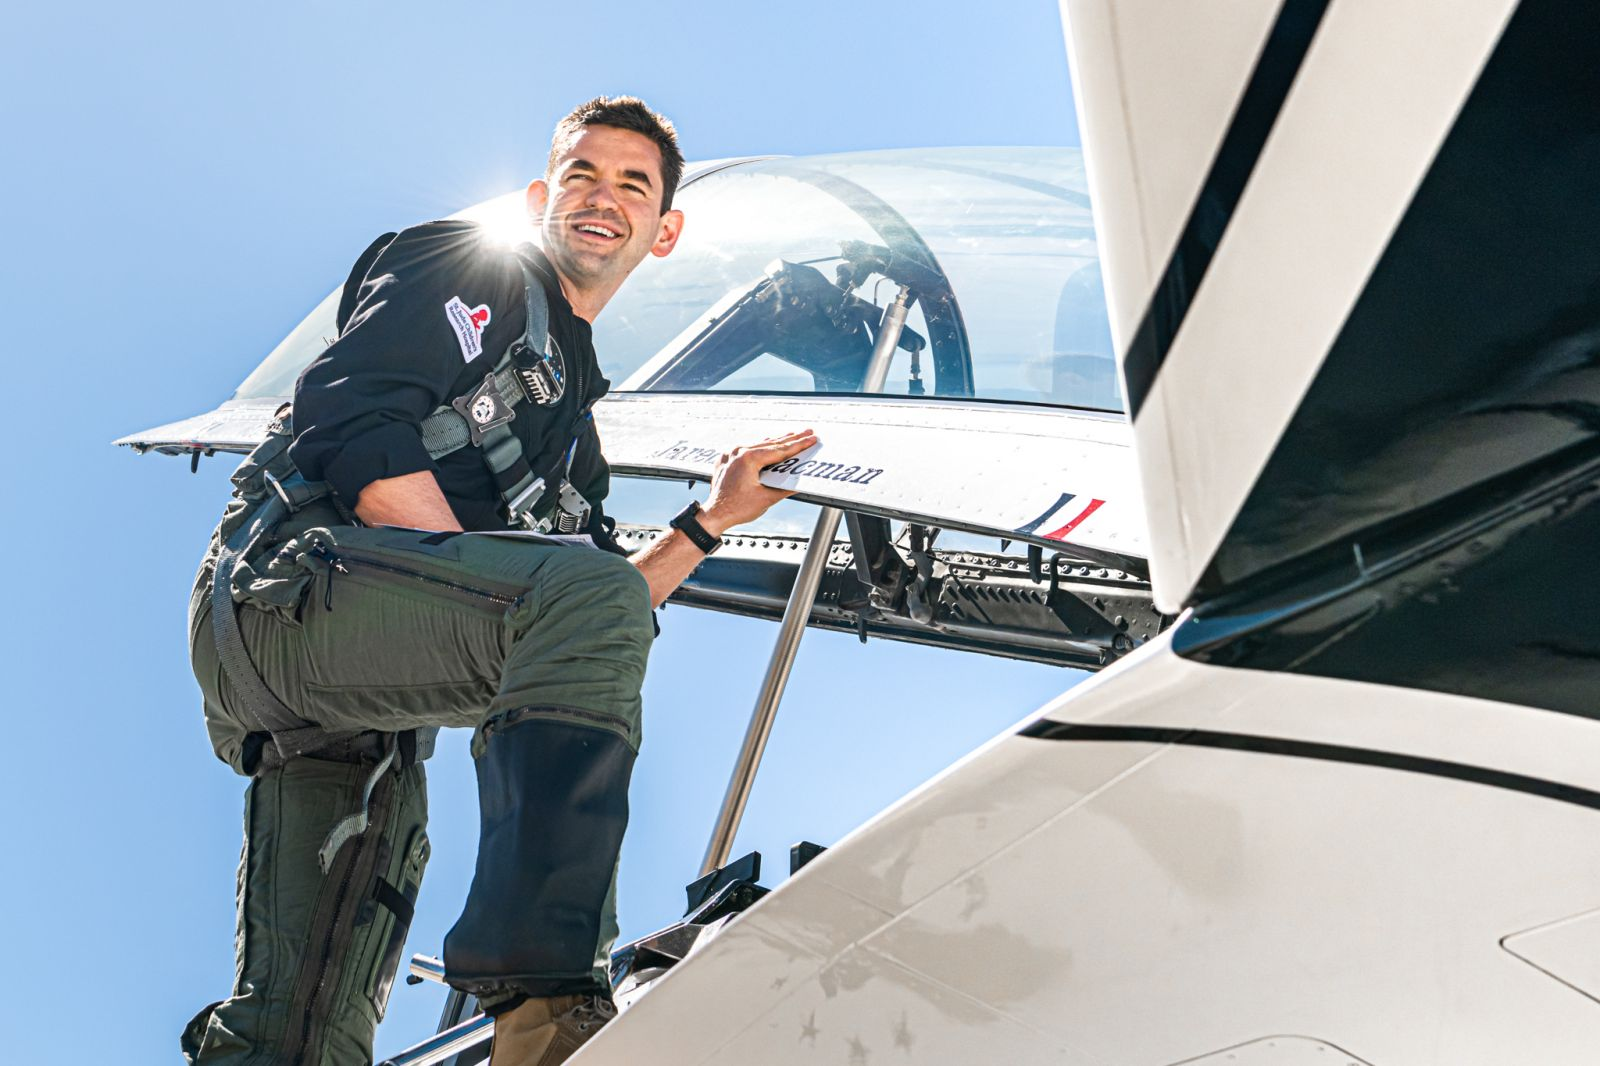 Jared Isaacman, a billionaire entrepreneur and avid pilot, bought a SpaceX Crew Dragon and put together the Inspiration4 mission, the first all-private civilian trip into space. Credit: Inspiration4 / John Kraus